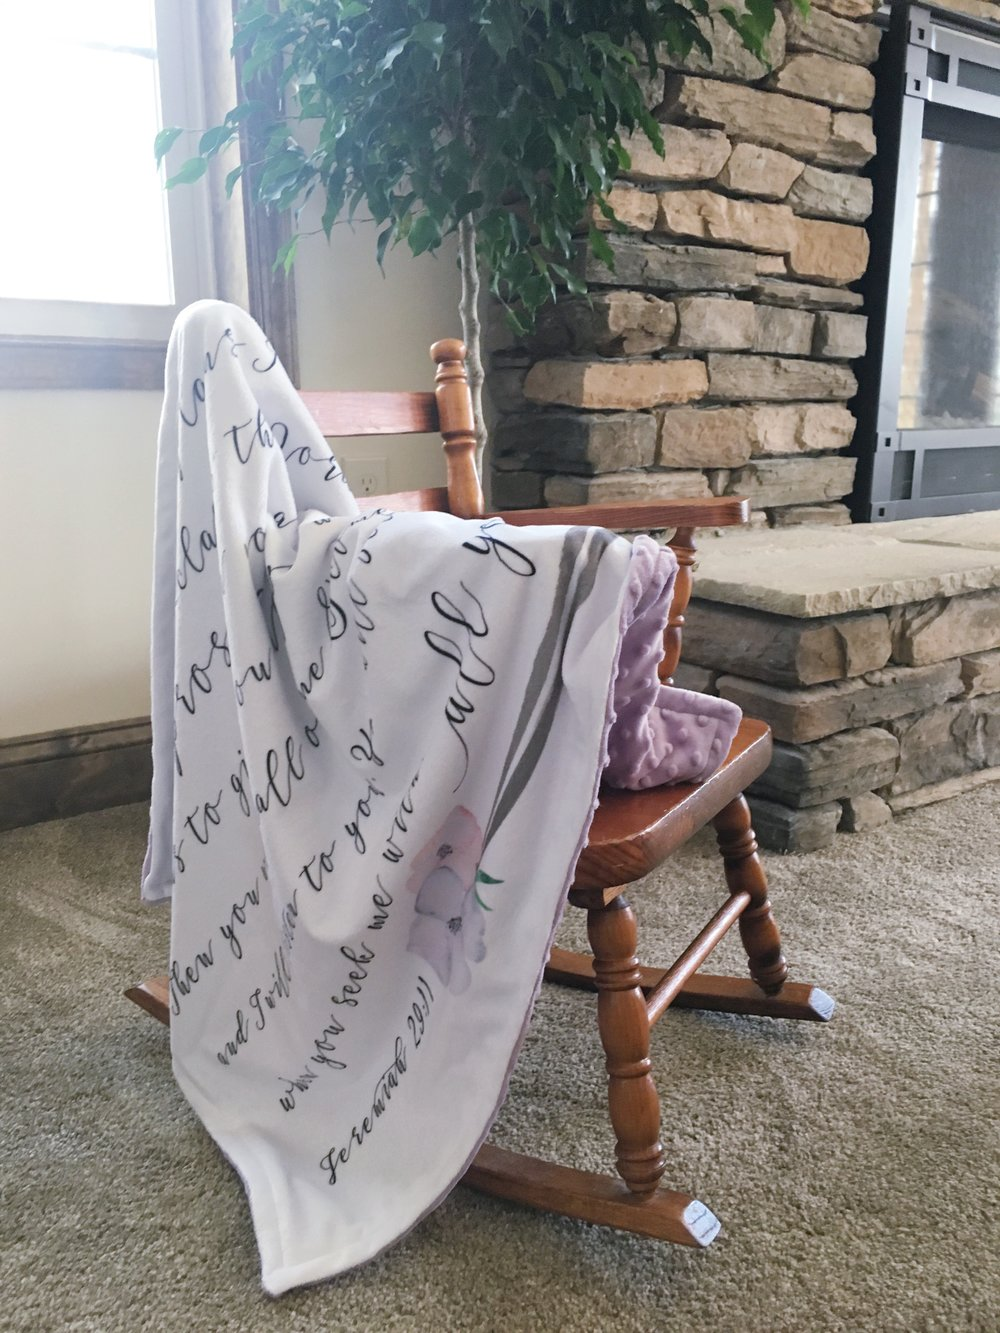 Central PA, Baby Blanket, Hand lettered, JesSmith Designs, Invitations, custom-04-15 06.26.18.jpg